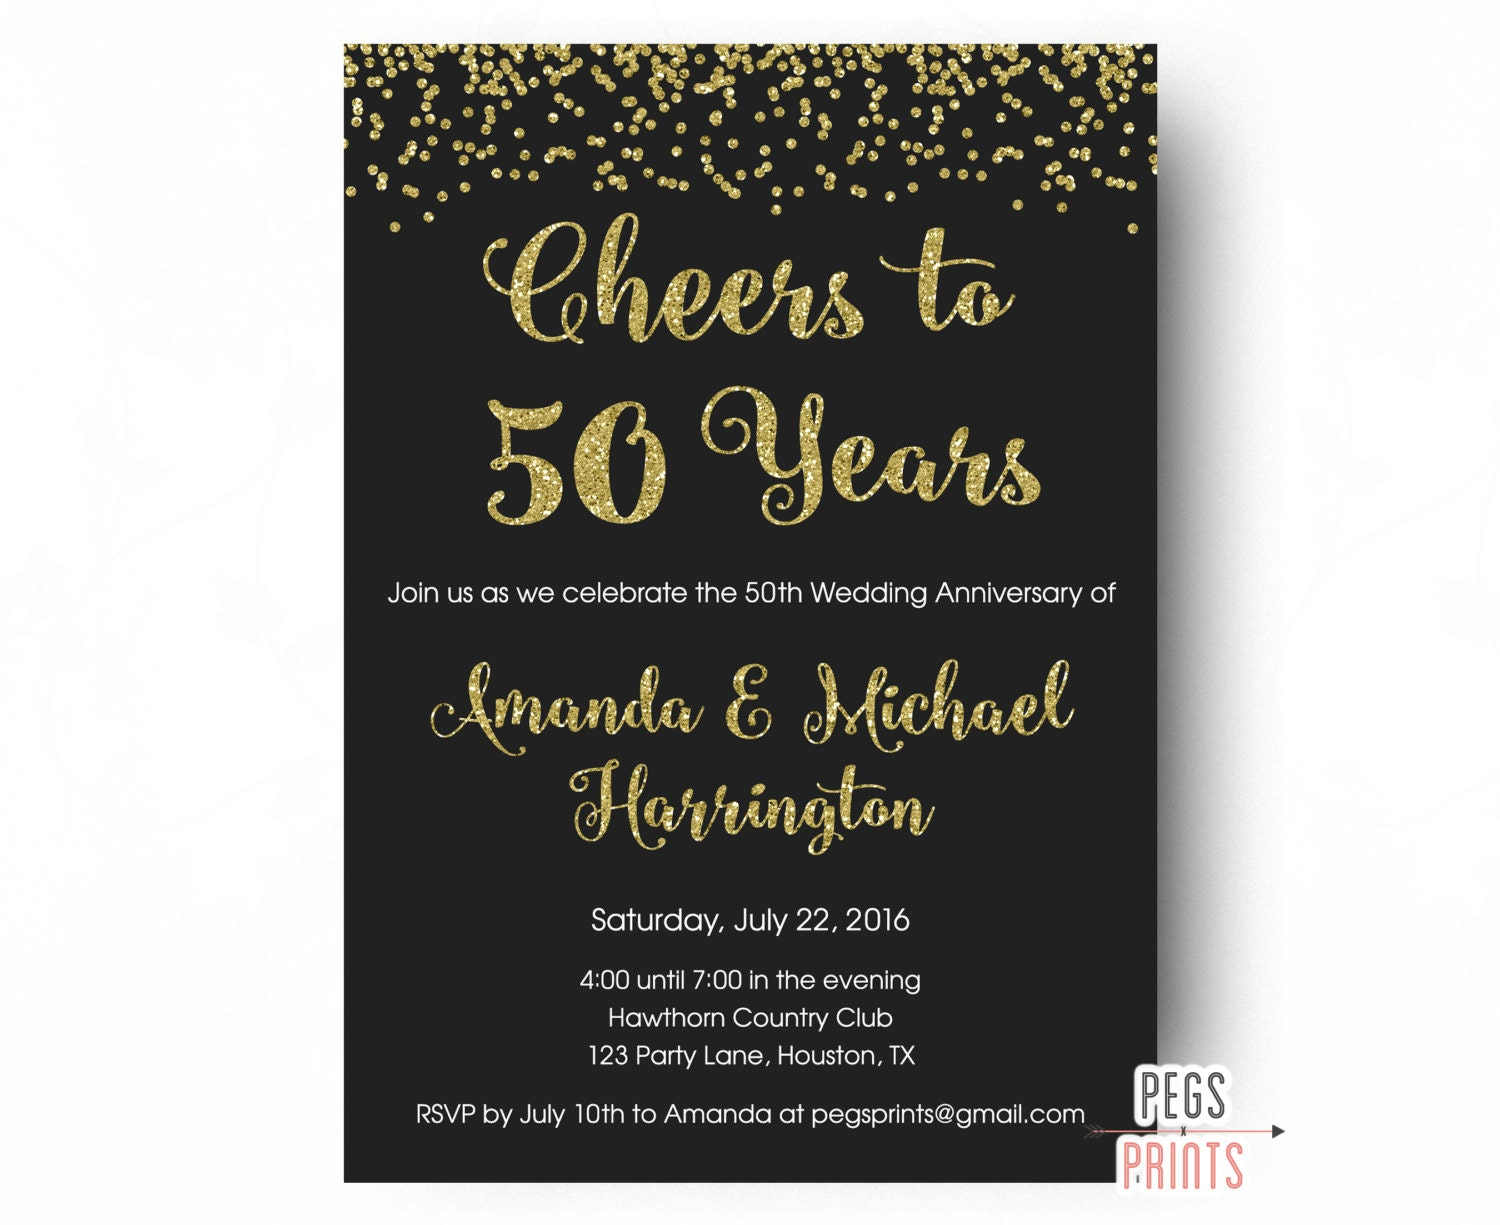 50th Wedding Invitation Templates: Cheers To 50 Years Invitation 50th Anniversary Invitation